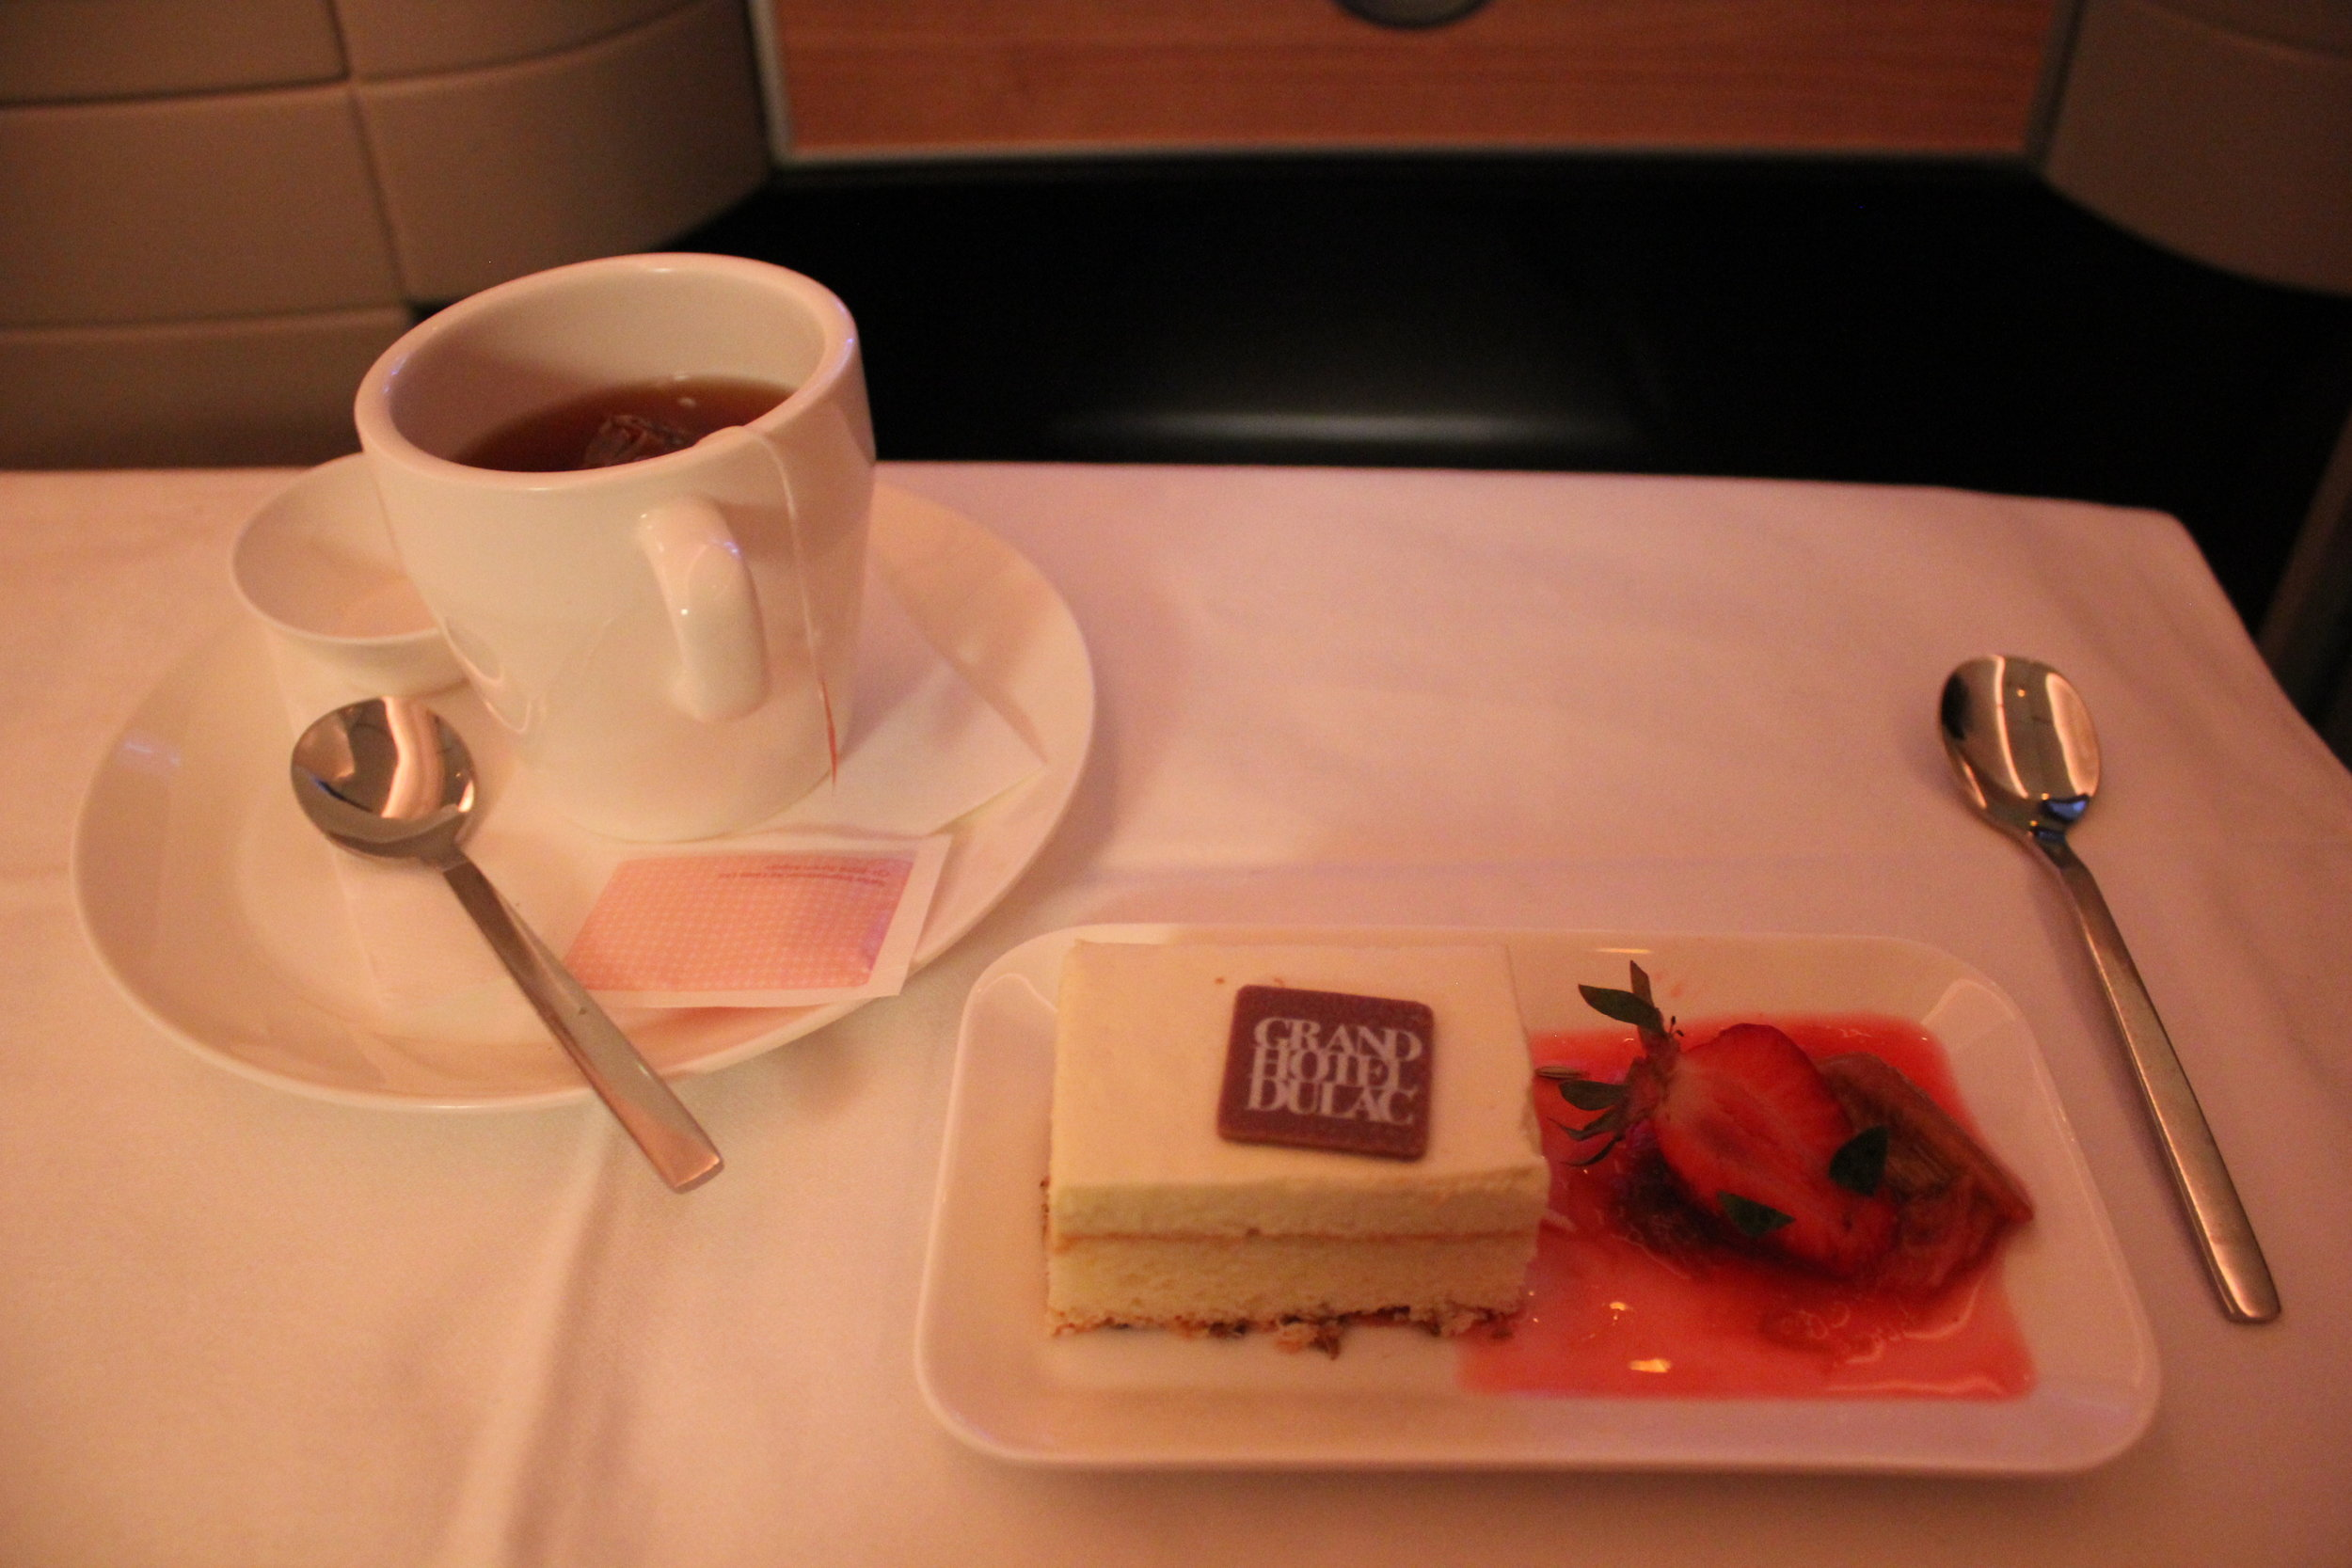 Swiss 777 business class – Financier cake with strawberry and rhubarb compote